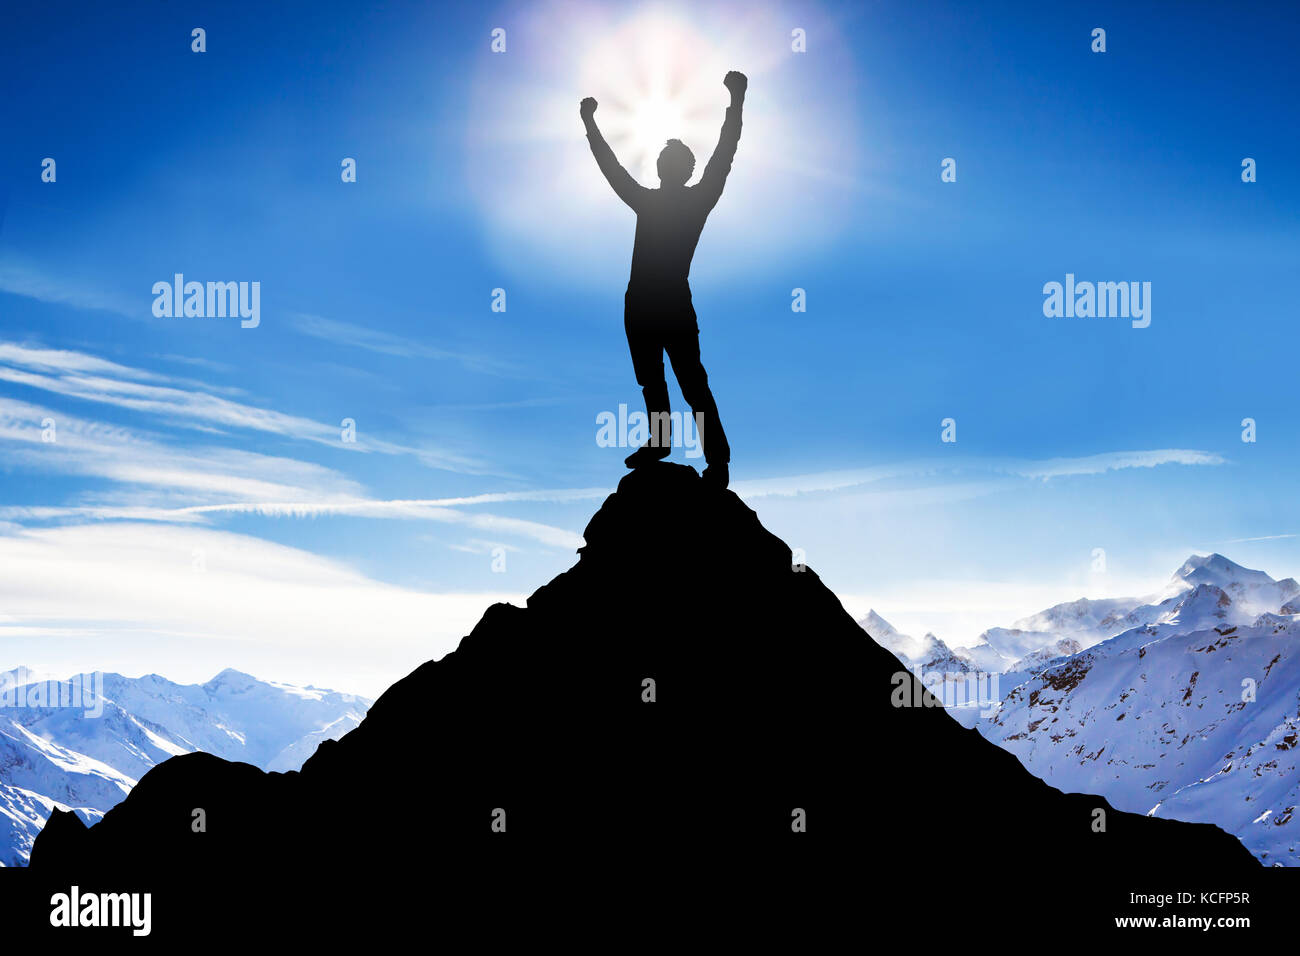 Silhouette Of A Man After Succeeded Climbing Against Snowy Mountains - Stock Image